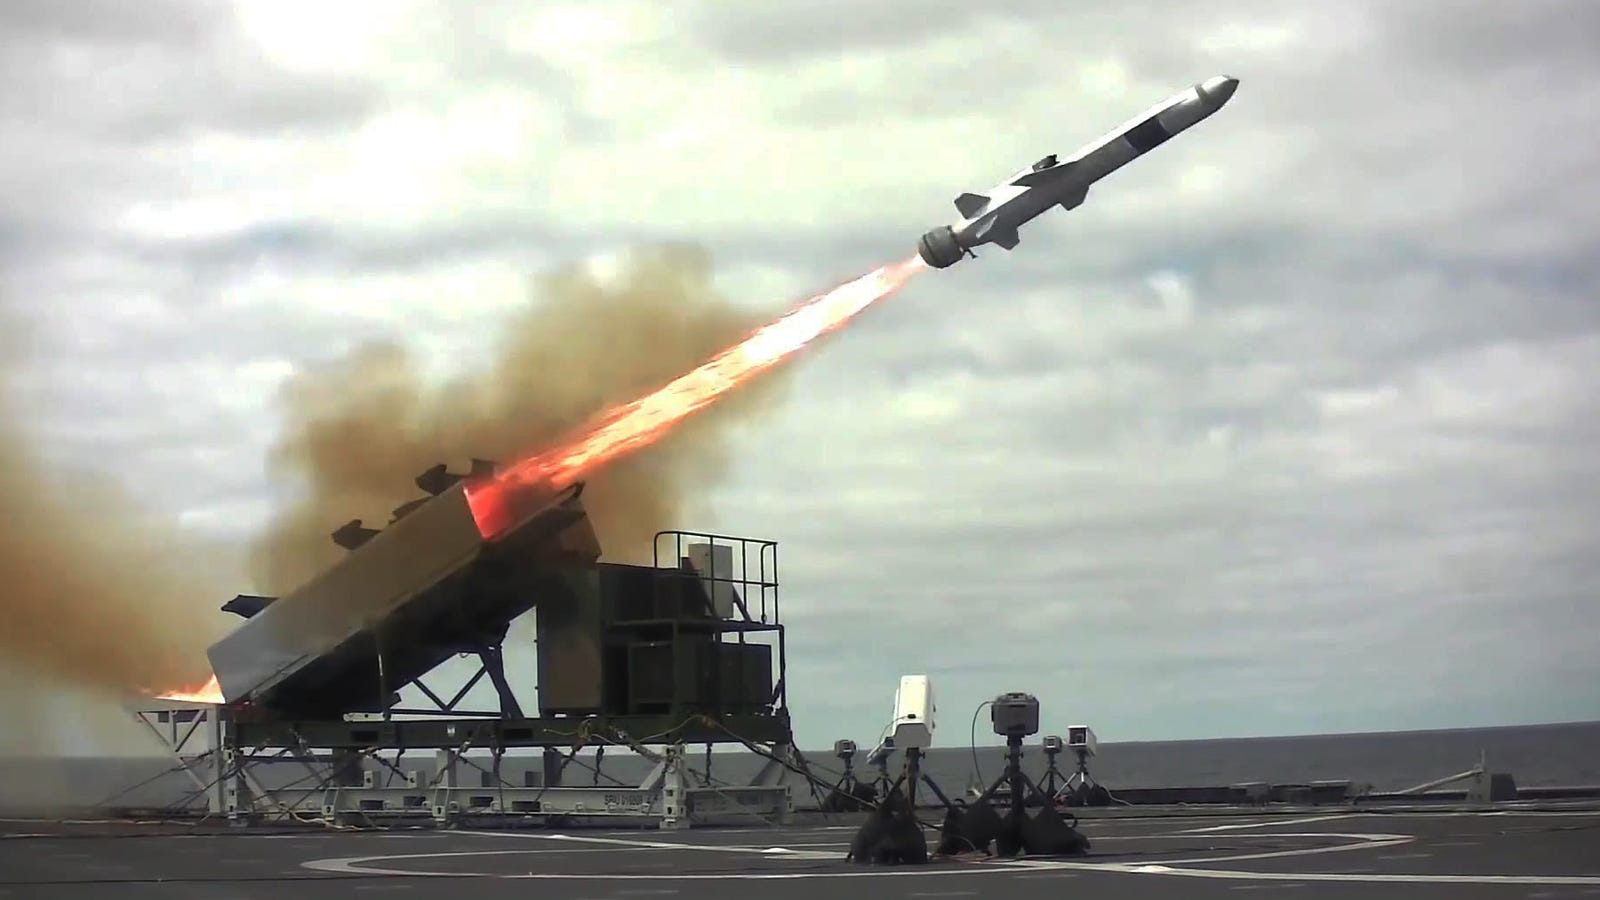 Us Navy Looking To Arm Its Logistics Ships With Missiles And Commandos